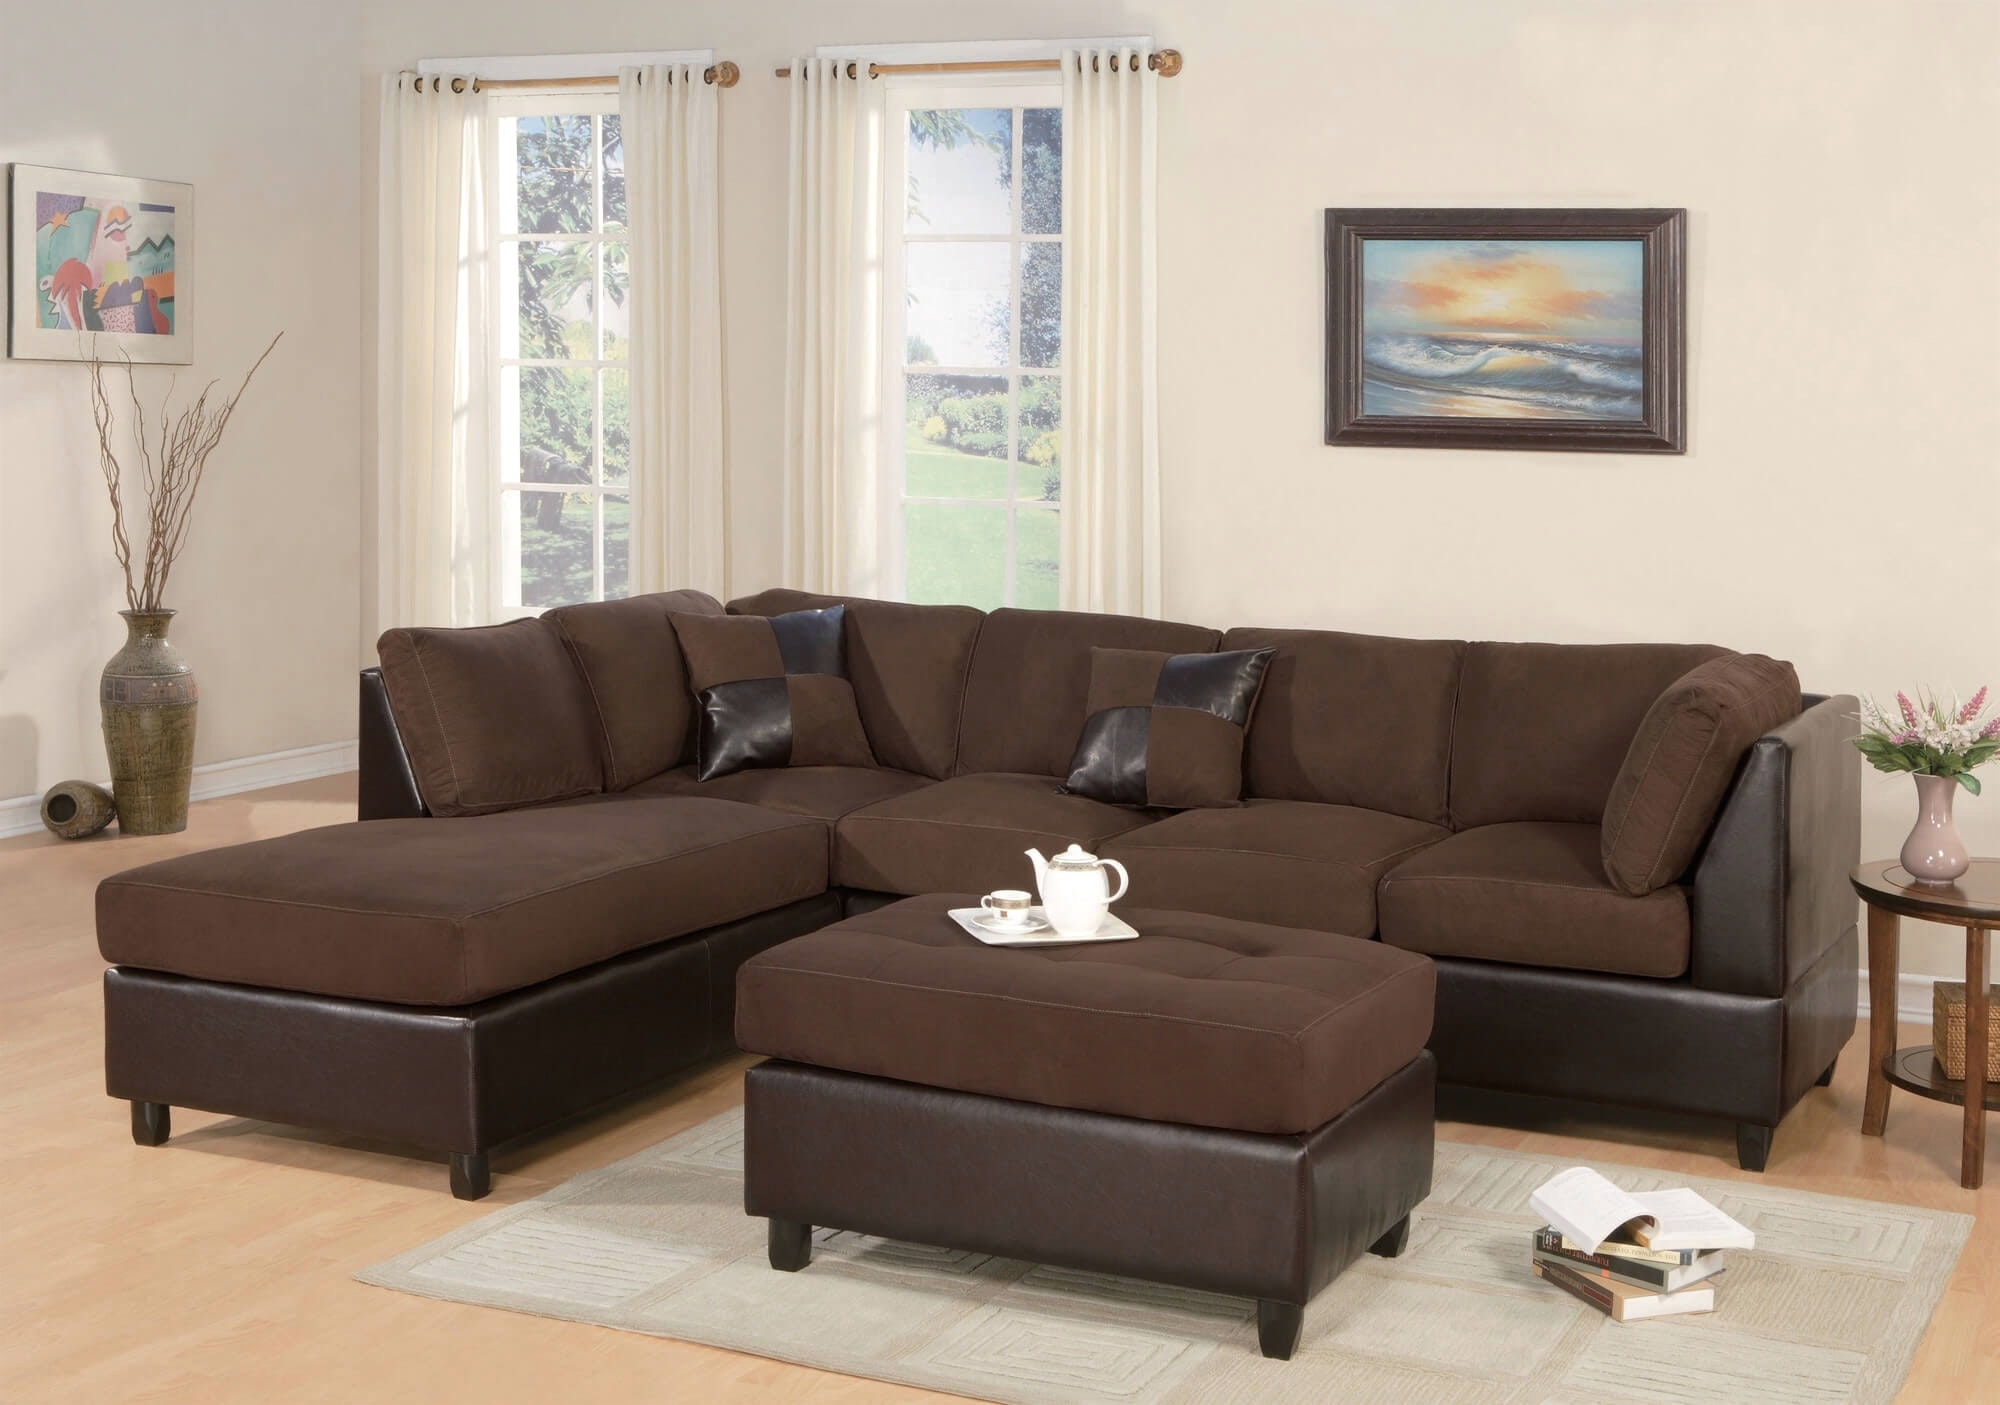 Luxury Sectional Couch Under 1000 12 For Your Sofas And Couches Set For Sectional Sofas Under (View 11 of 15)